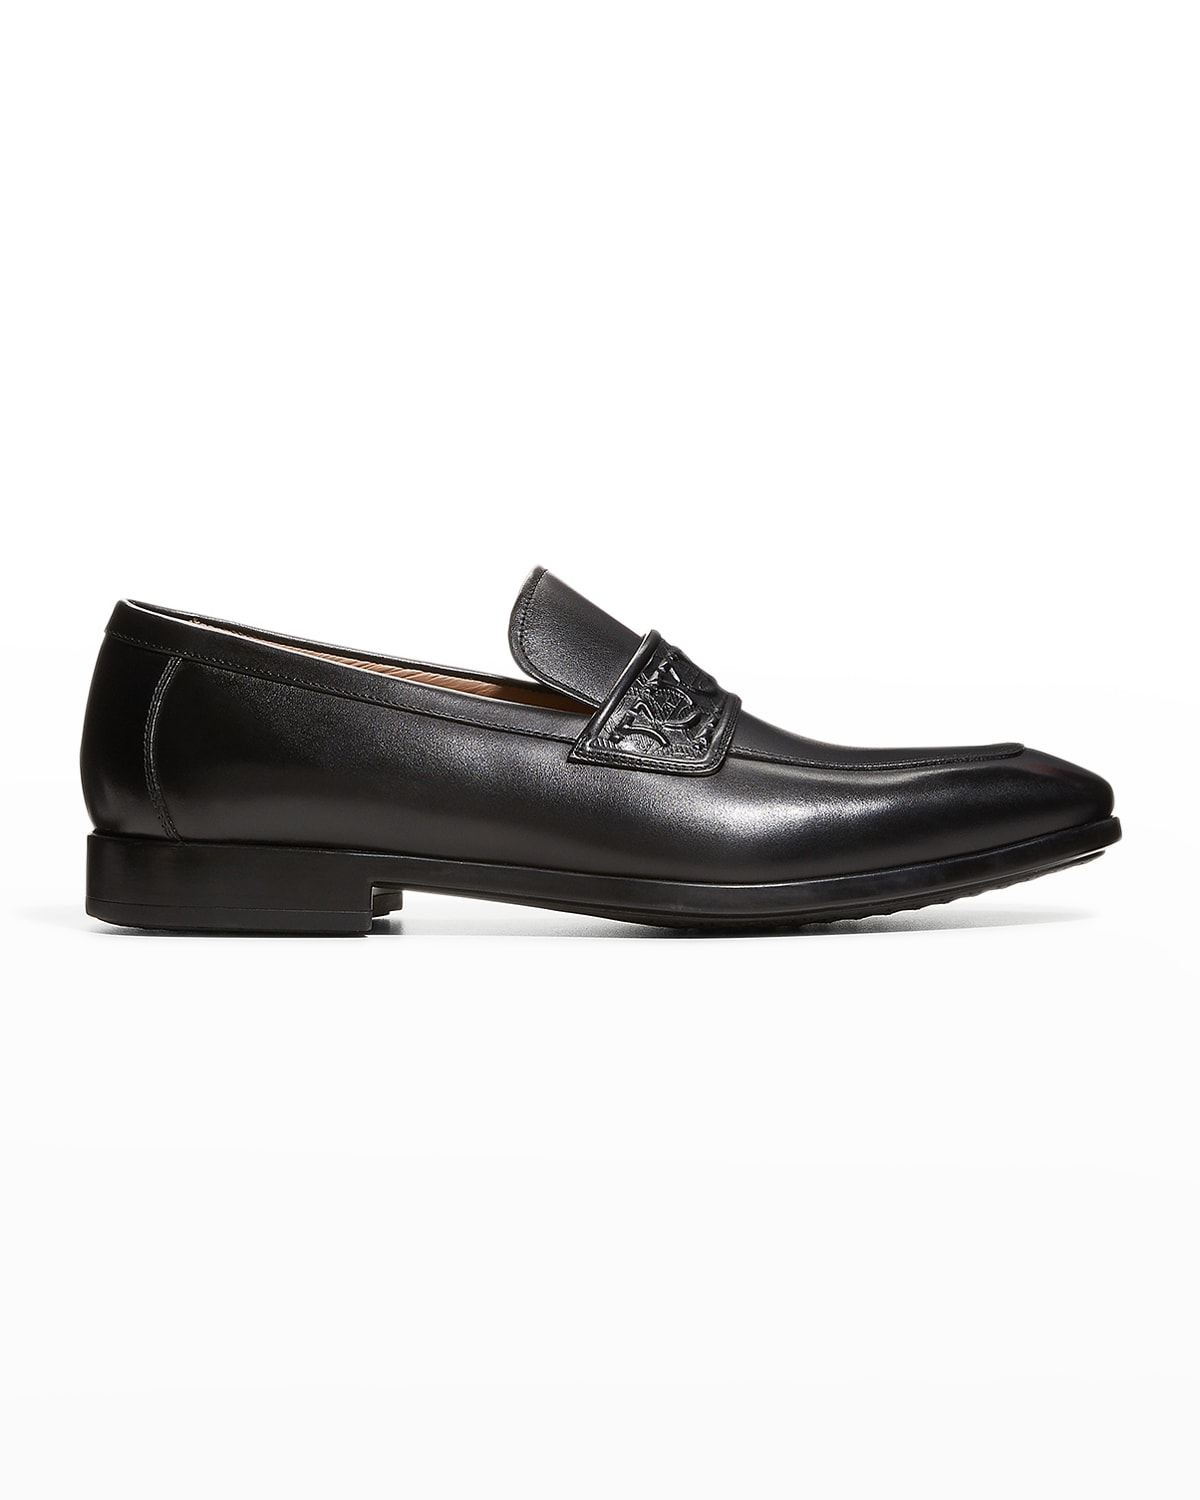 Men's Naxos Leather Loafers with Gancini Embossing